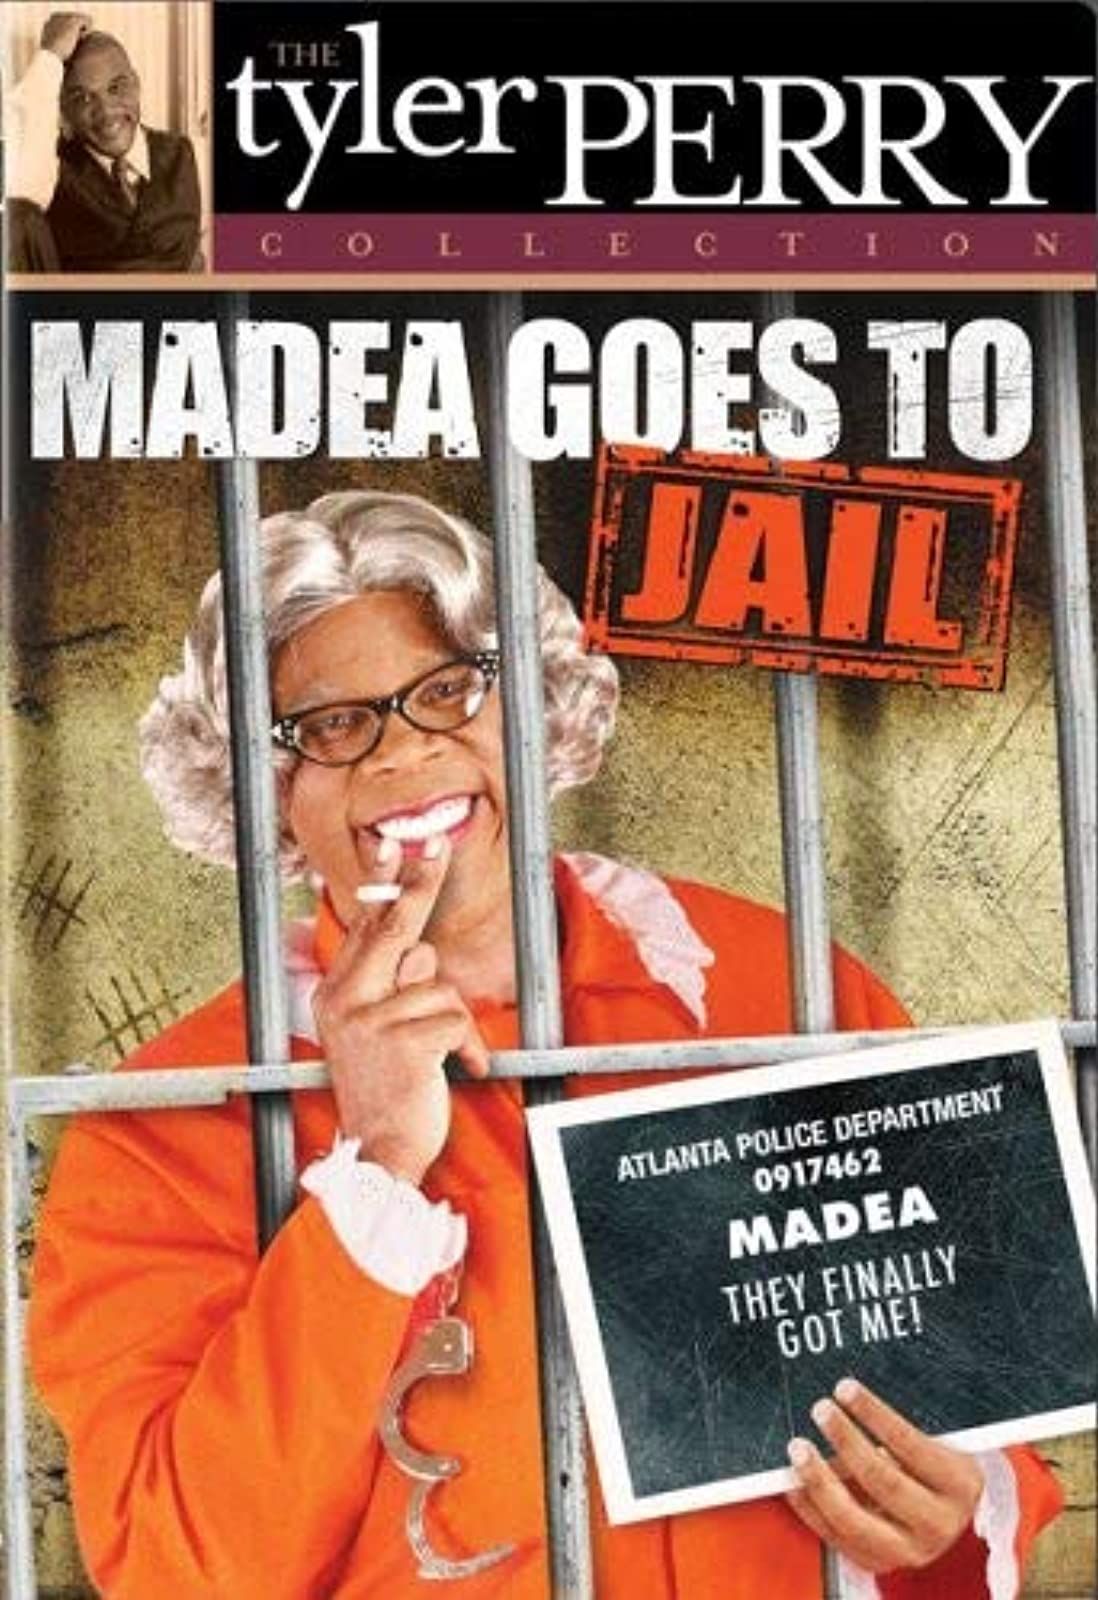 Madea Goes To Jail The Tyler Perry Collection On DVD Comedy